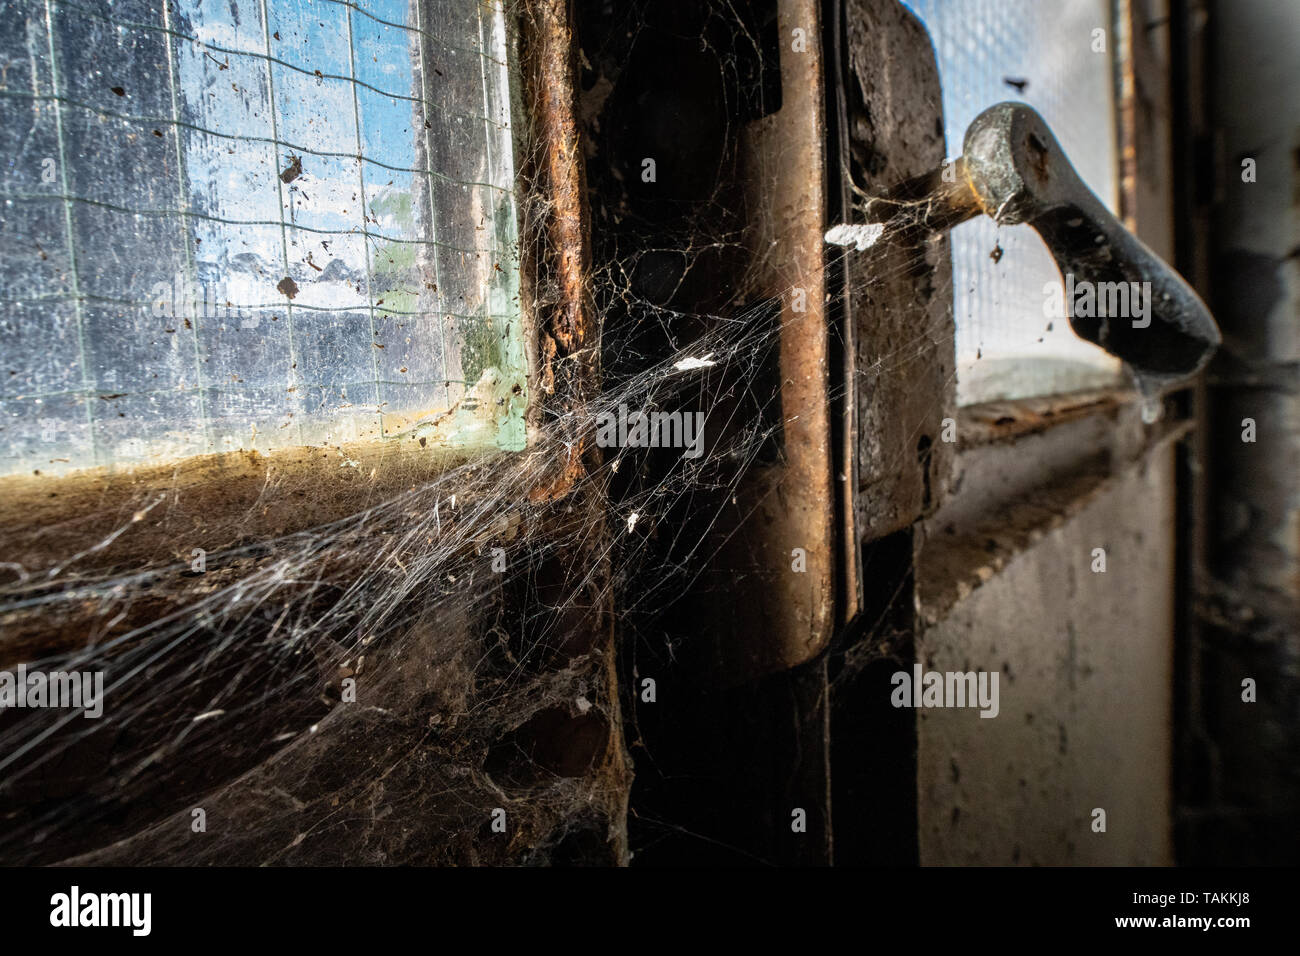 Derelict industrial abandoned old factory with rusty and weathered parts. - Stock Image